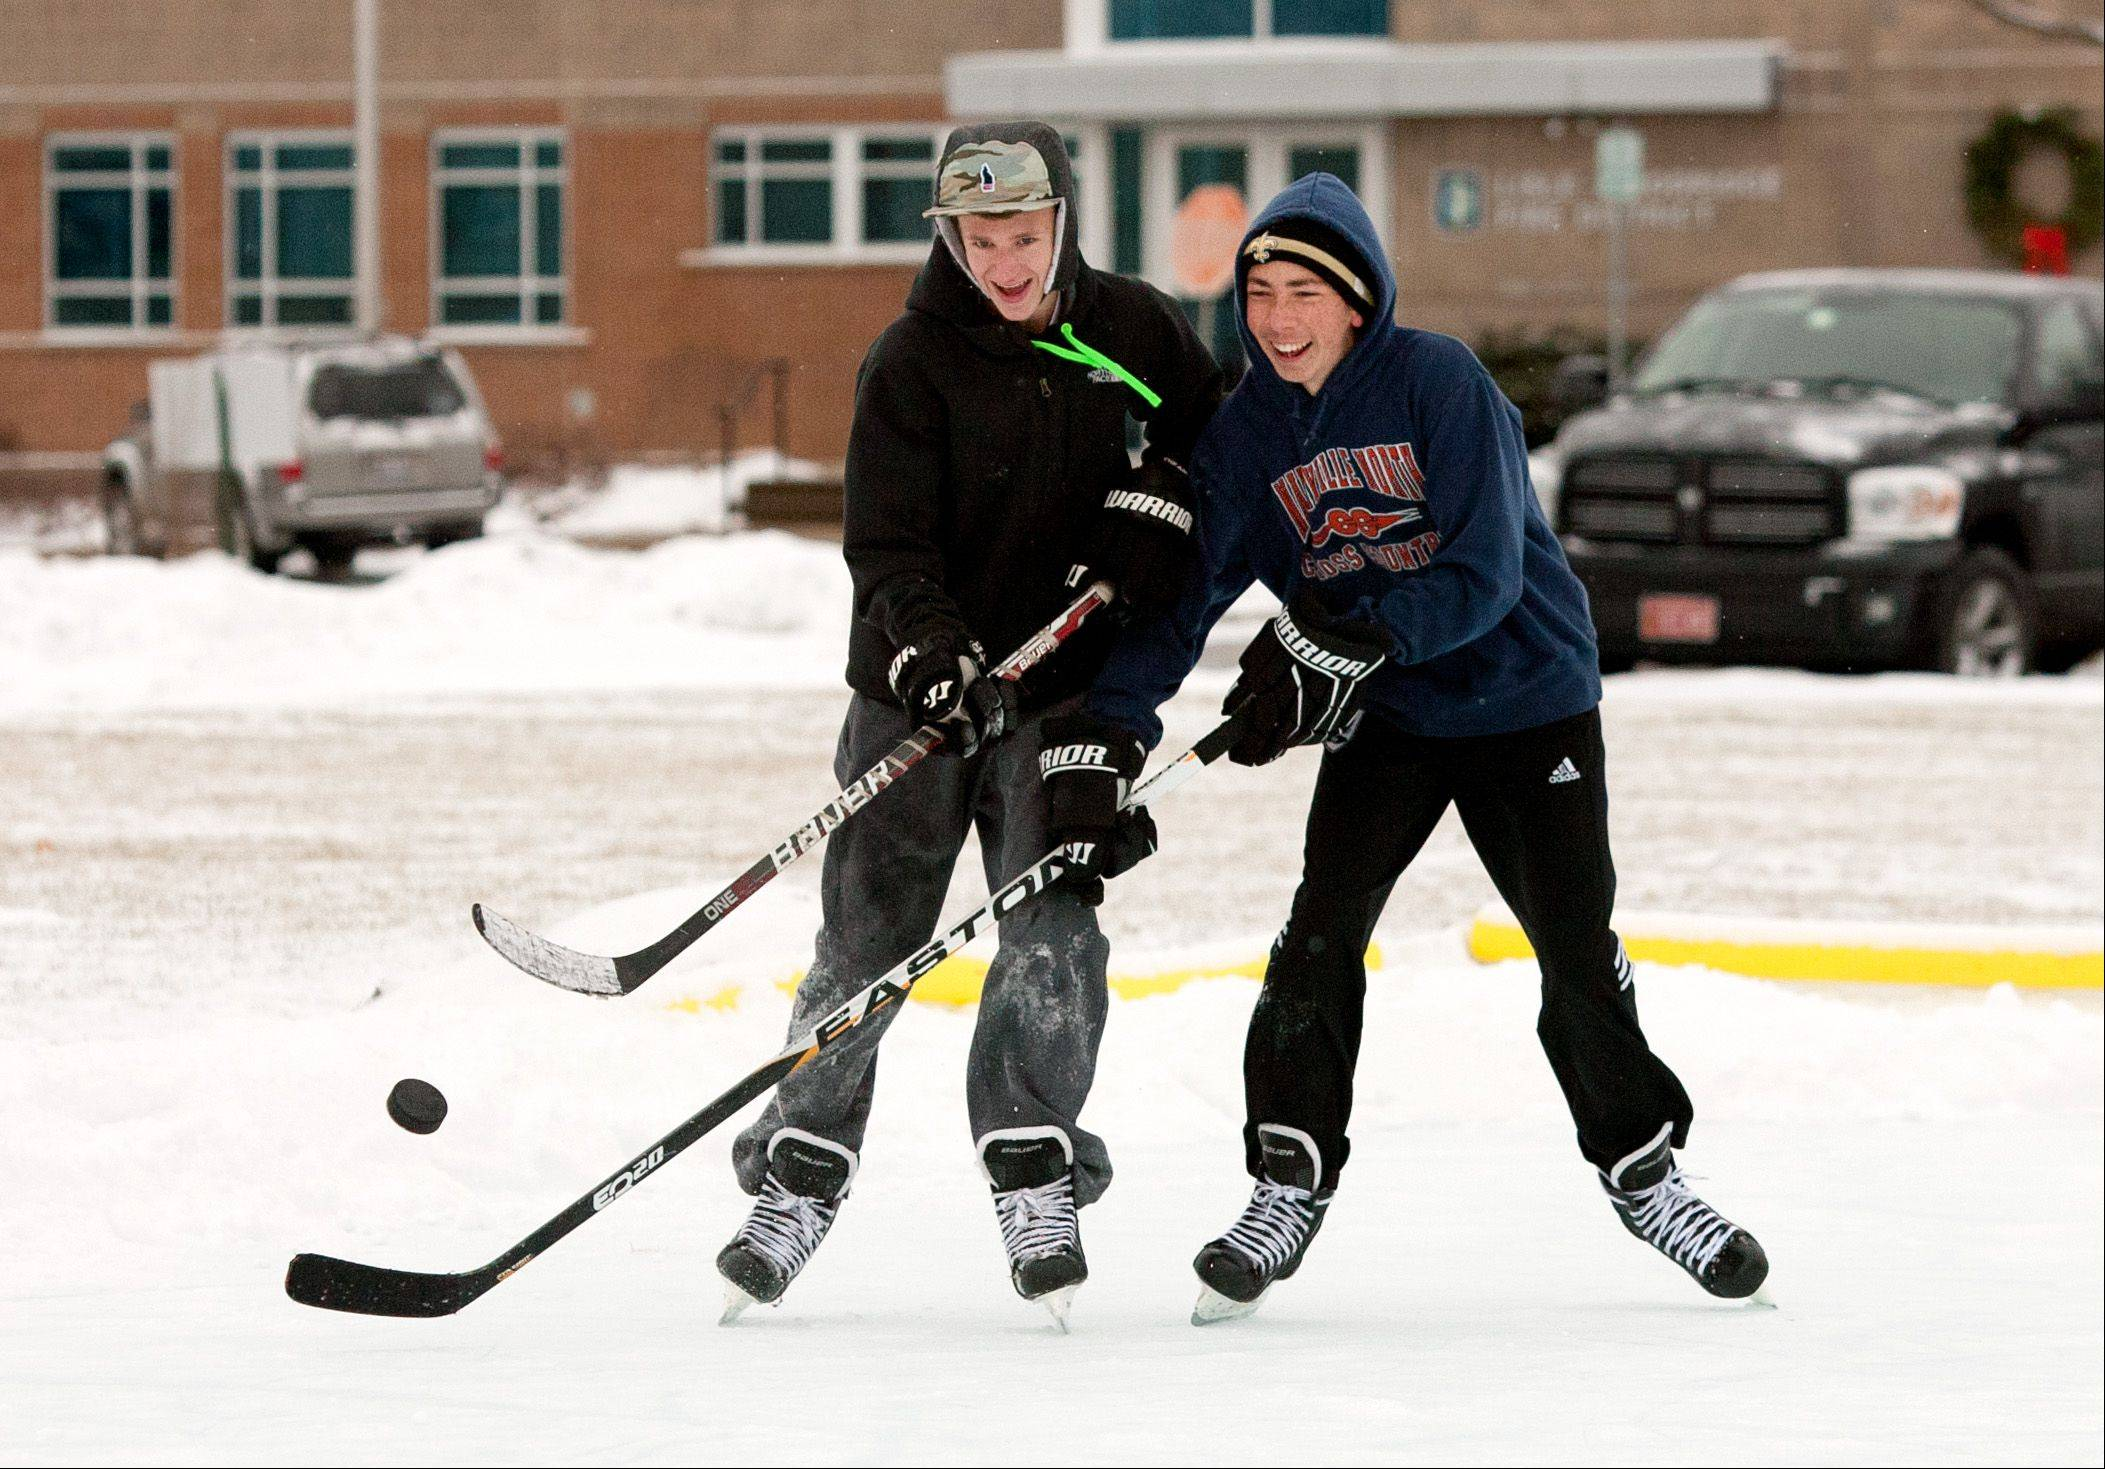 "Alex Tang, of Naperville, left, and Zach Adcock, of Woodridge, right, play hockey with their friends at a downtown outdoor Lisle ice rink off Burlington and Main Streets. Other friends playing include: Kit Benson of Naperville, Joe Lange of Naperville, and Ryan Adcock of Woodridge. ""We don't play competitive hockey, so we are just out here having fun as friends,"" said Tang."